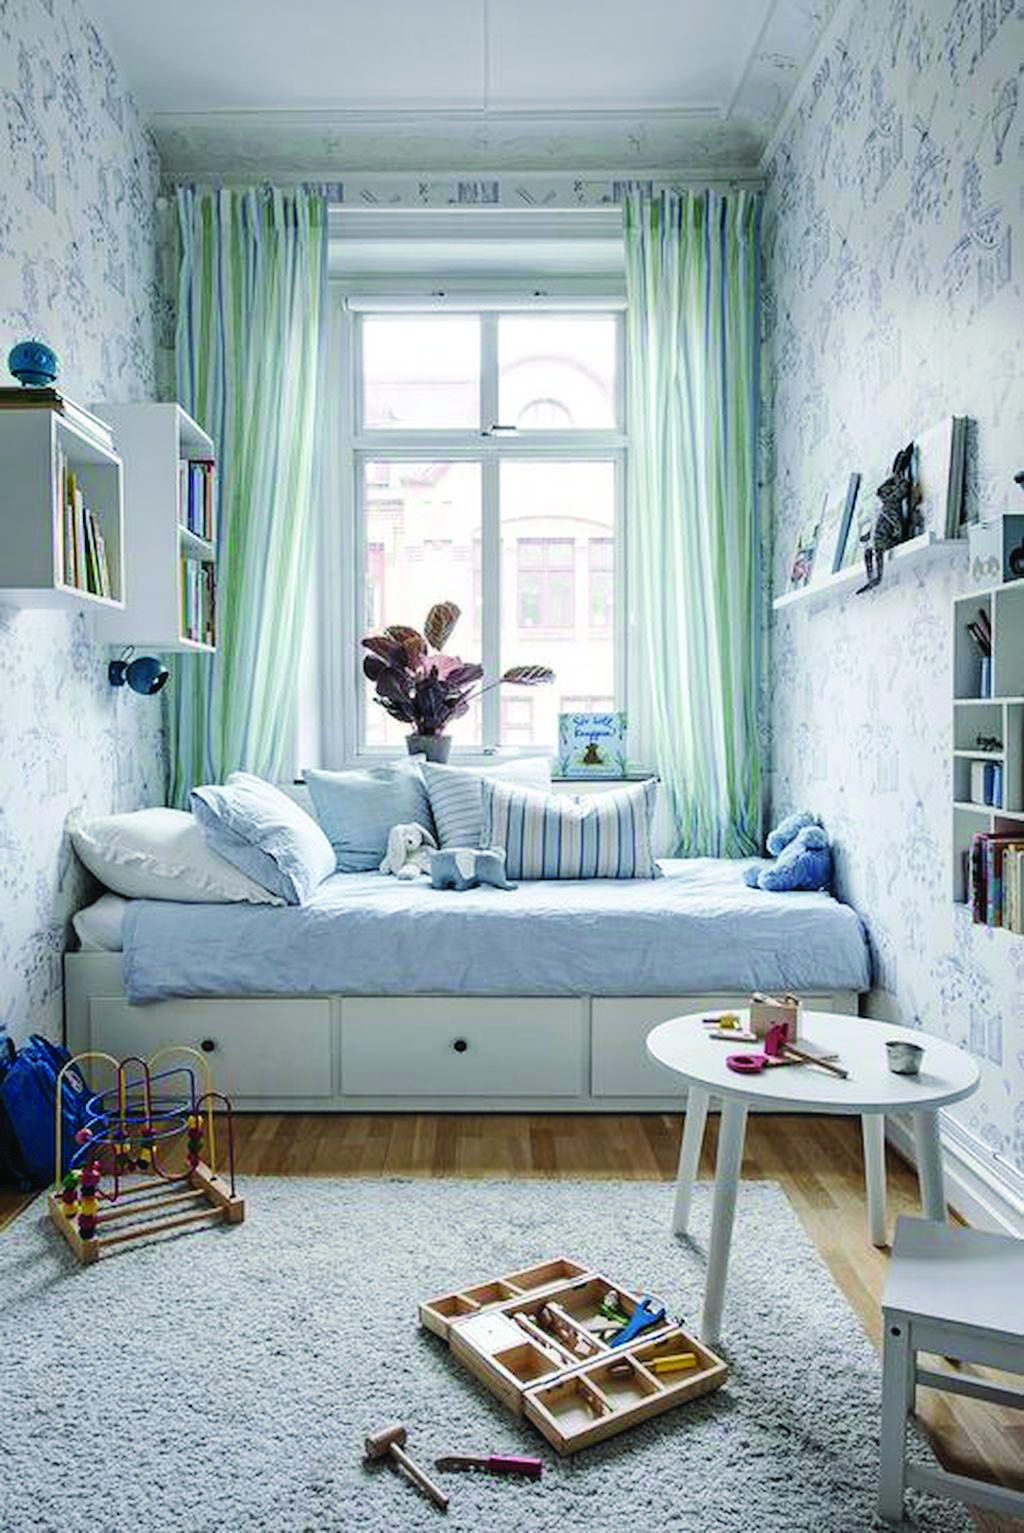 Extremely Fantastic Room Storage Room Hacks And Also Solutions Dova Home Small Room Design Apartment Bedroom Design Remodel Bedroom